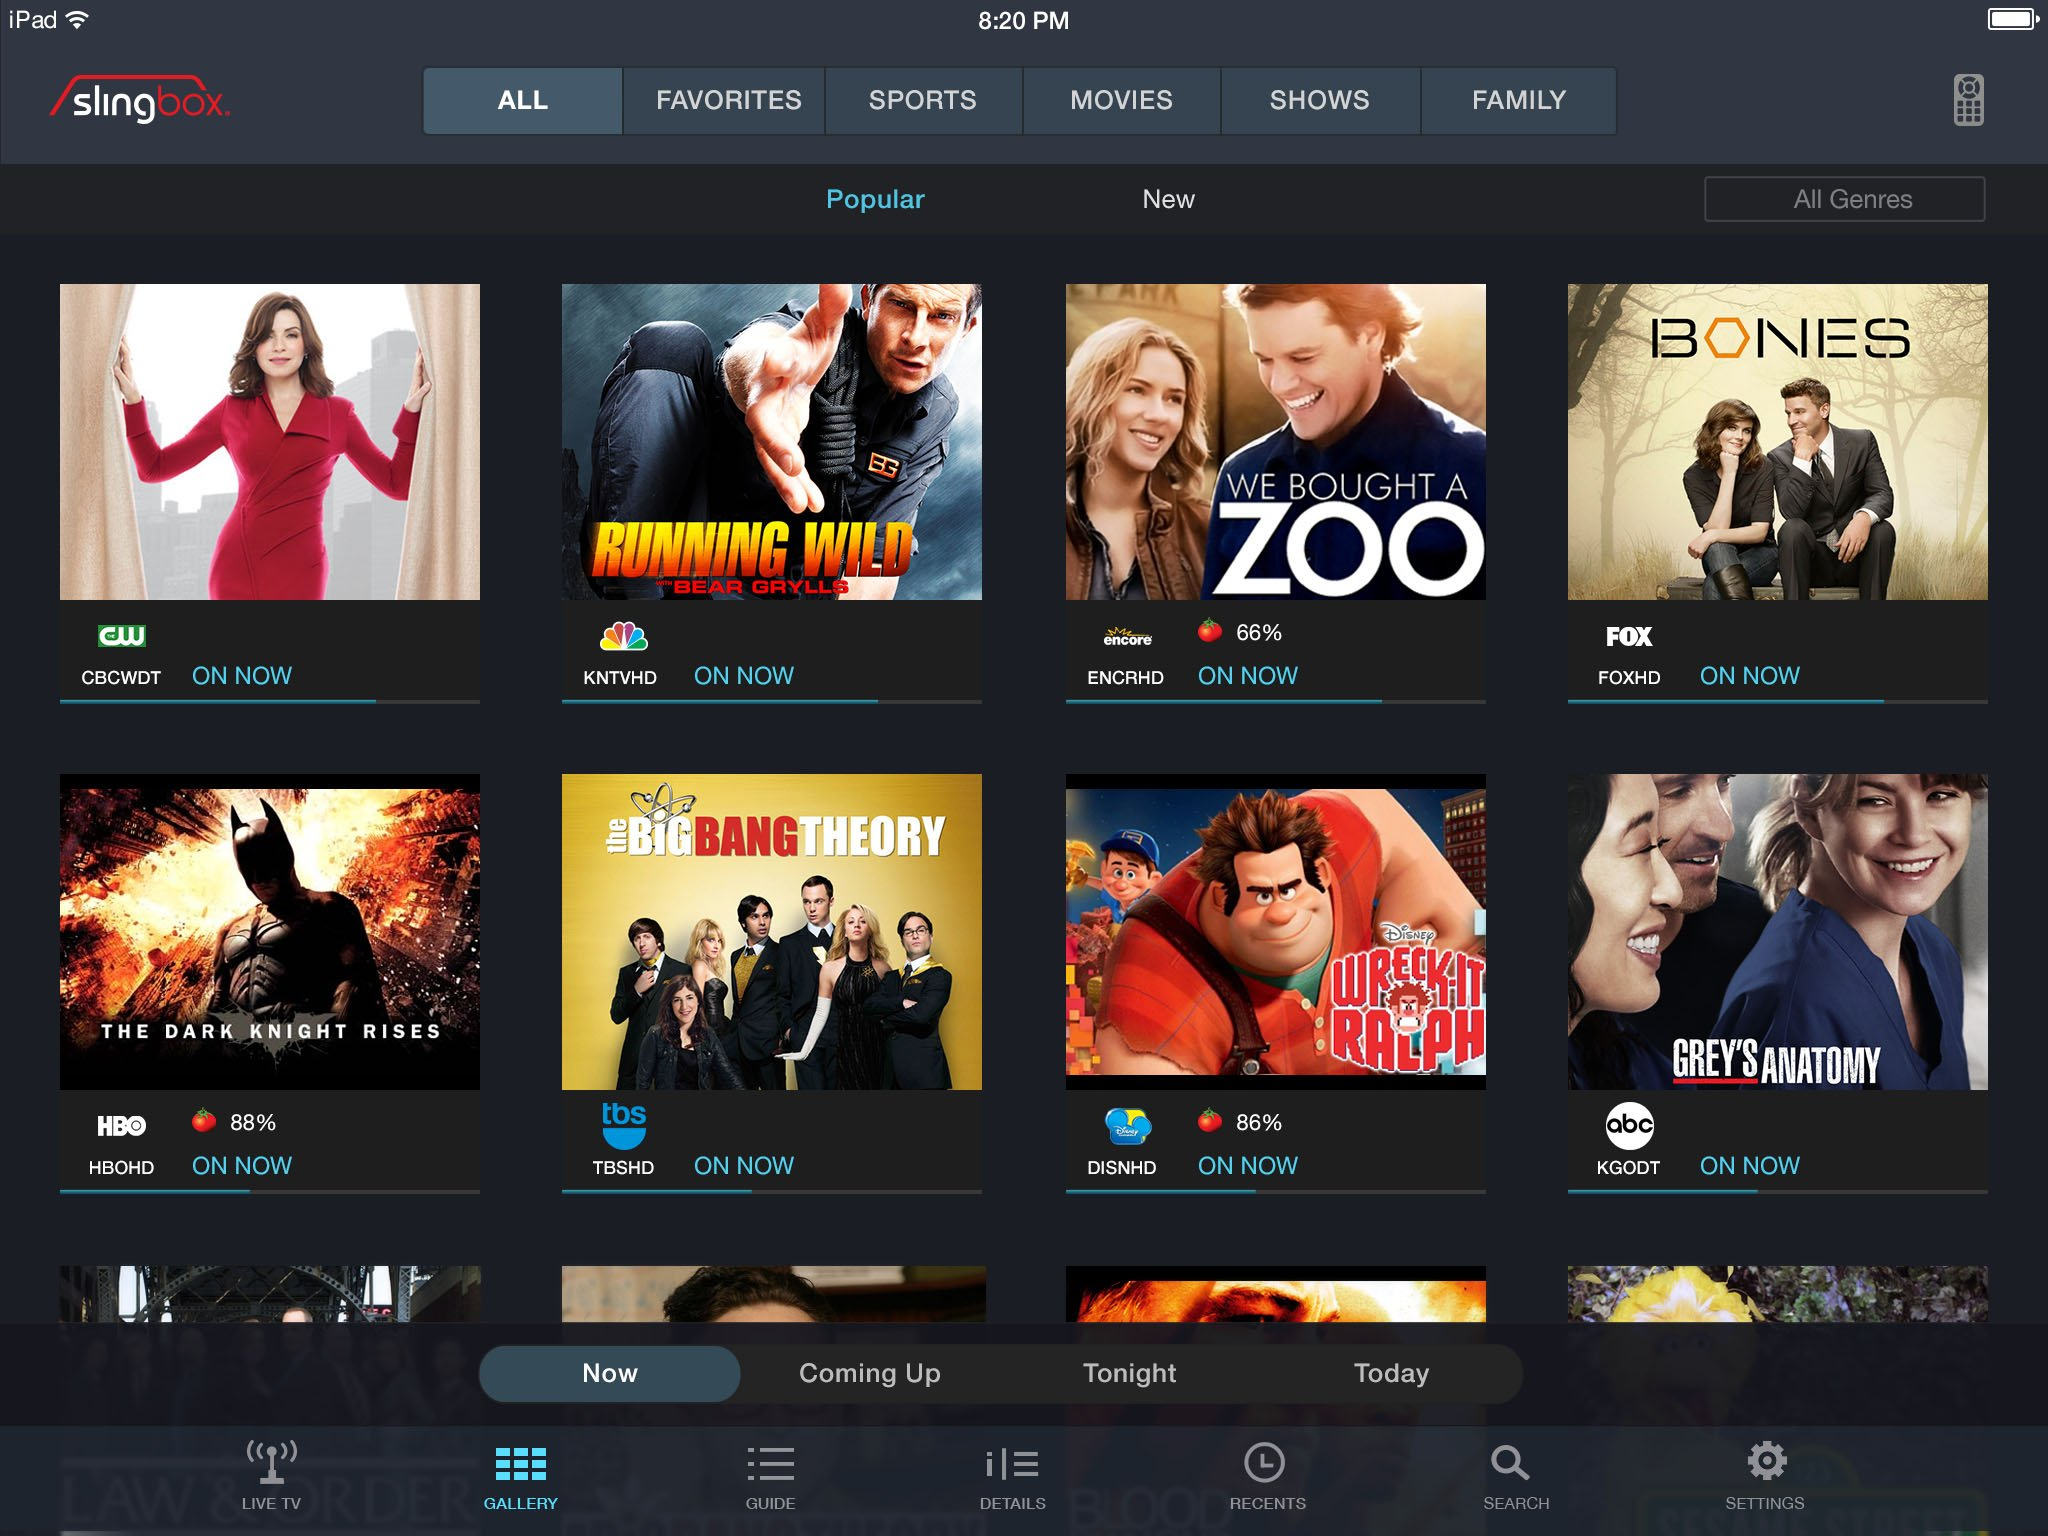 Slingbox is a good alternative to cord cutting with no sacrifice in viewing choices